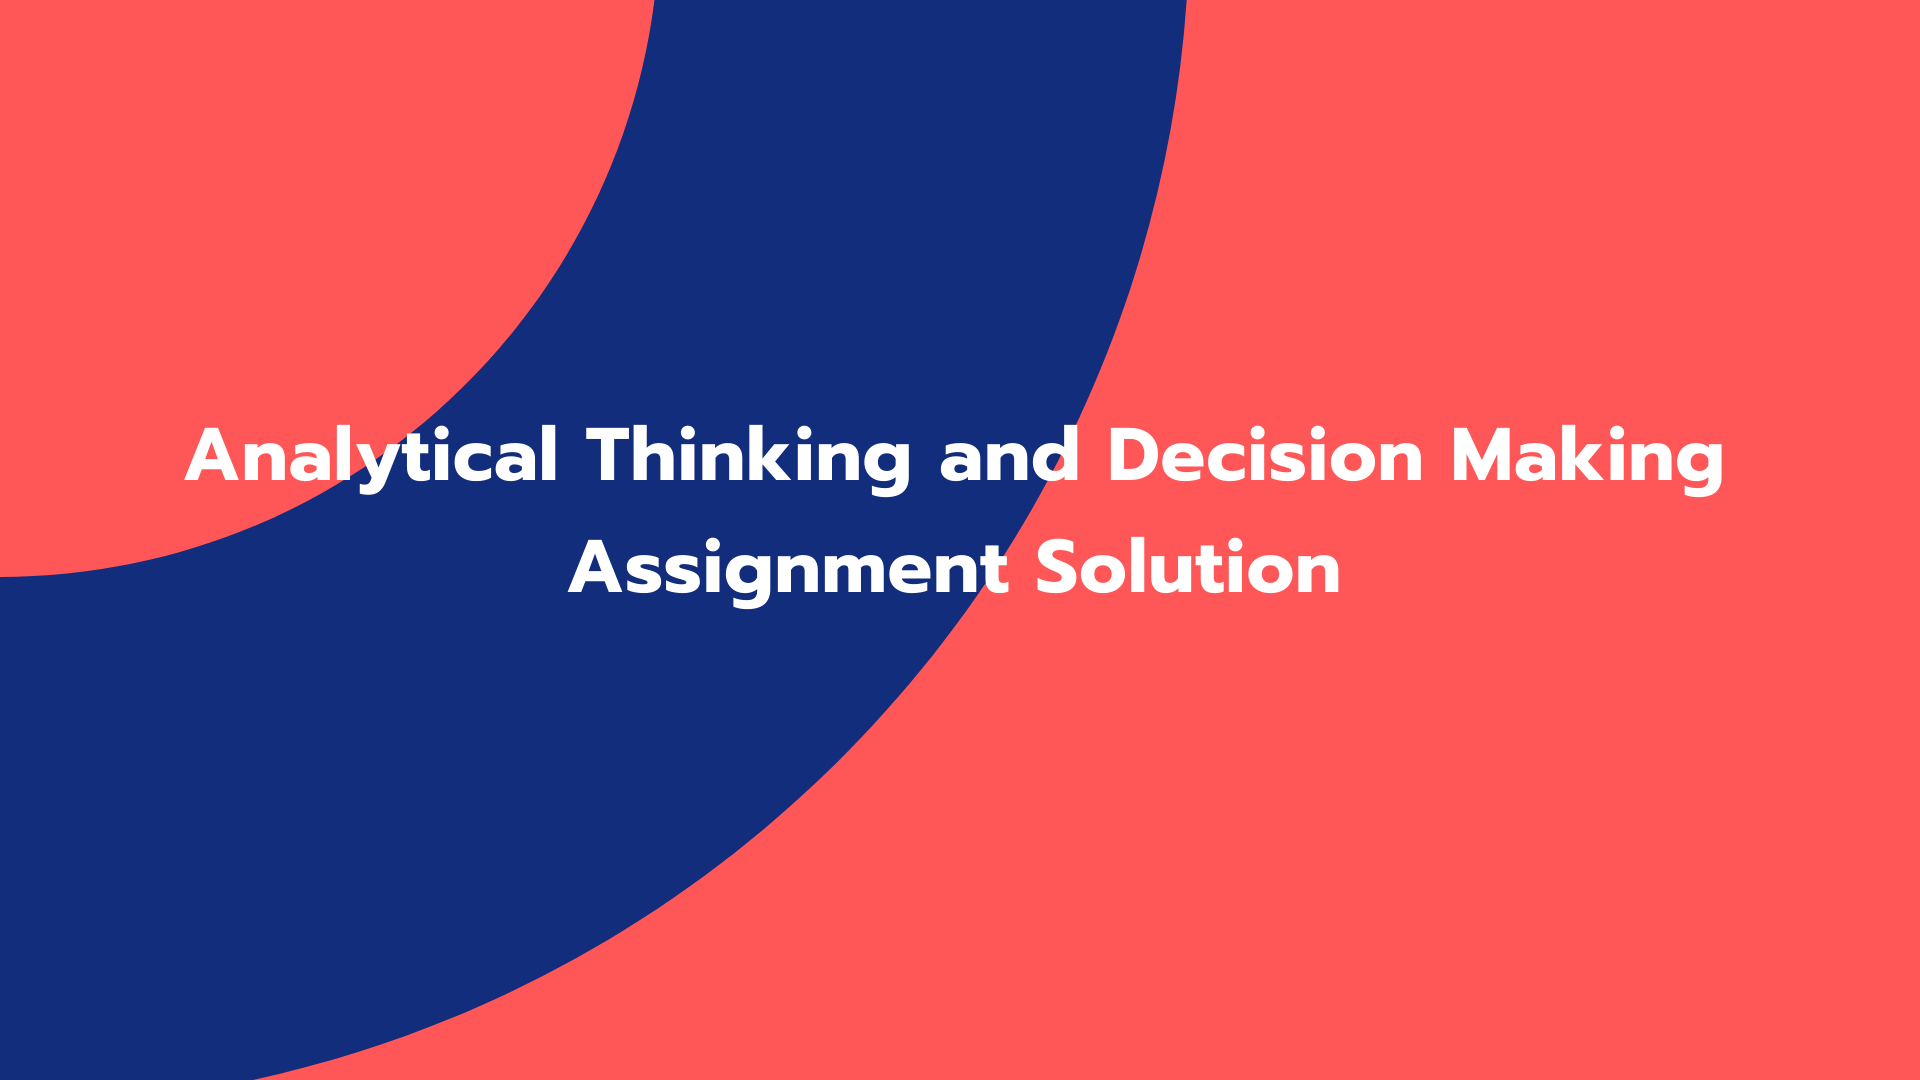 Analytical Thinking and Decision Making Assignment Solution